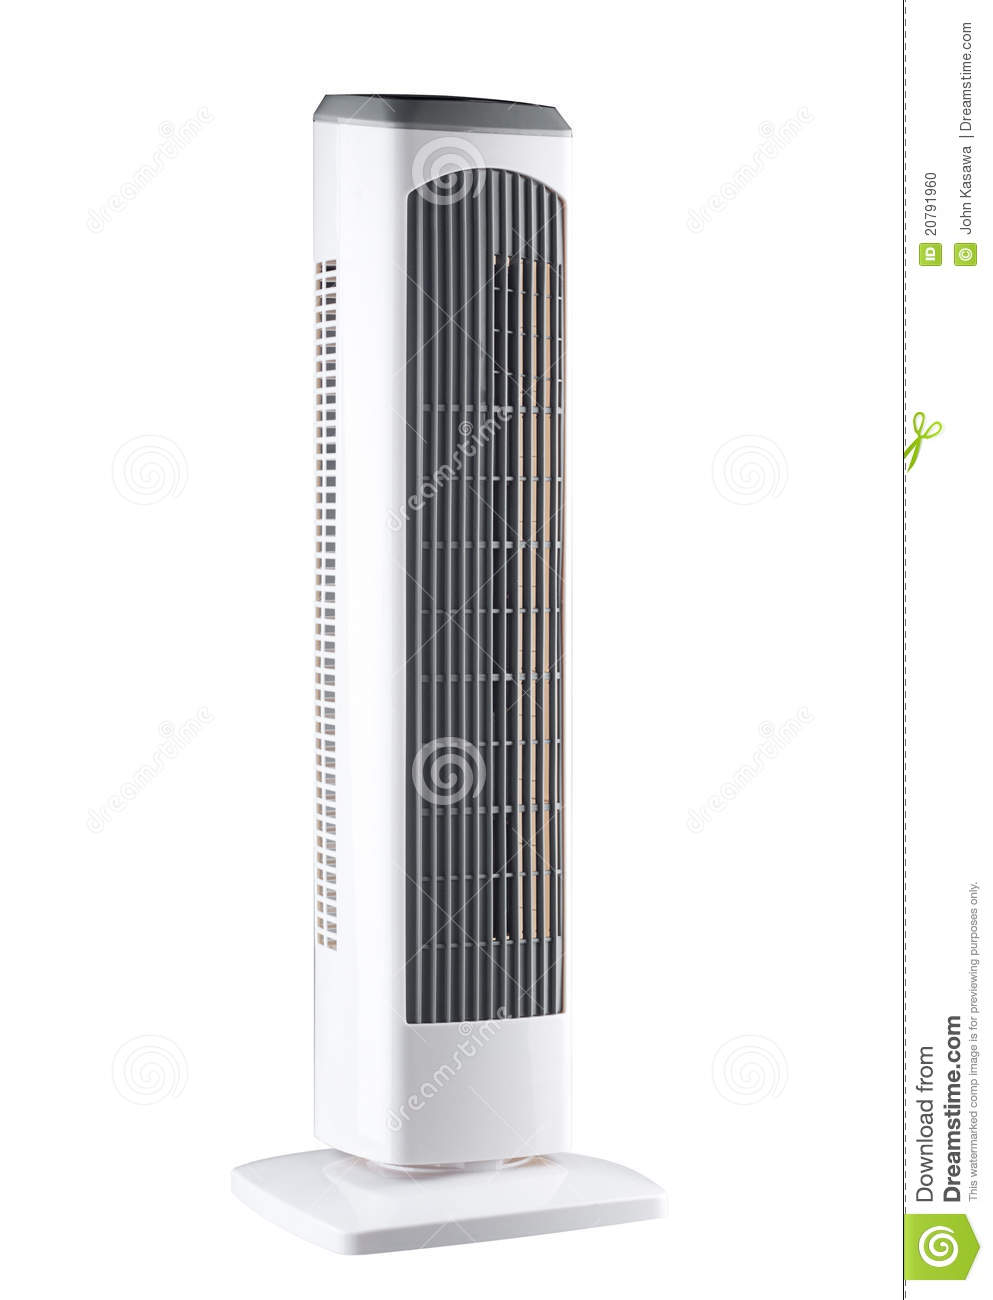 Air Cond Ventilator : Portable electric fan and air conditioner stock photo